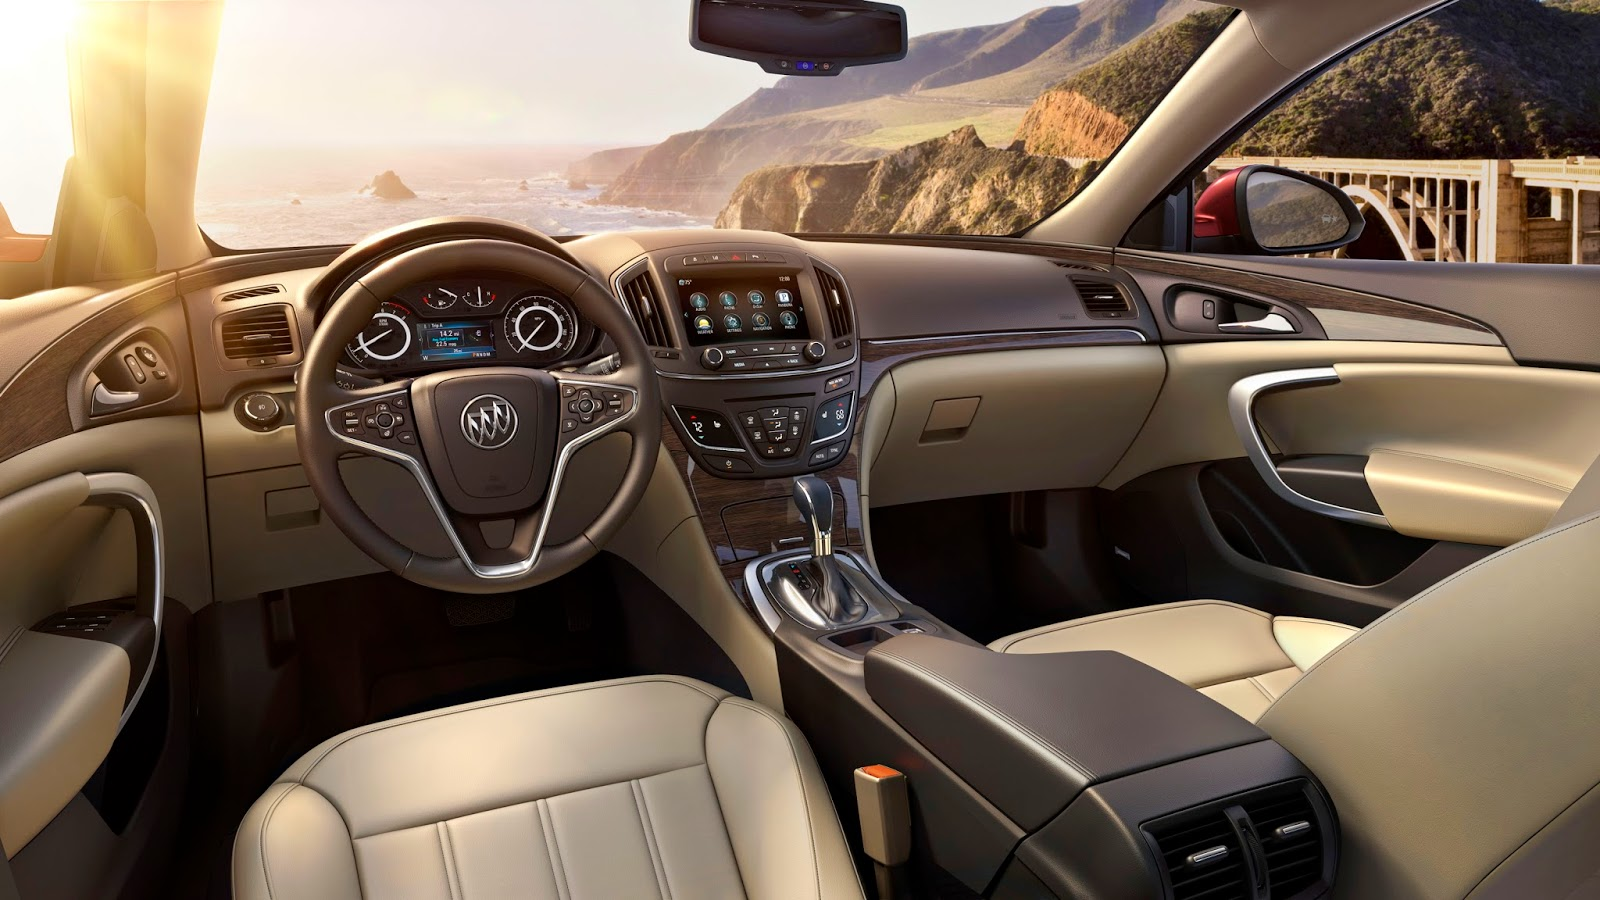 Interior view of 2015 Buick Regal